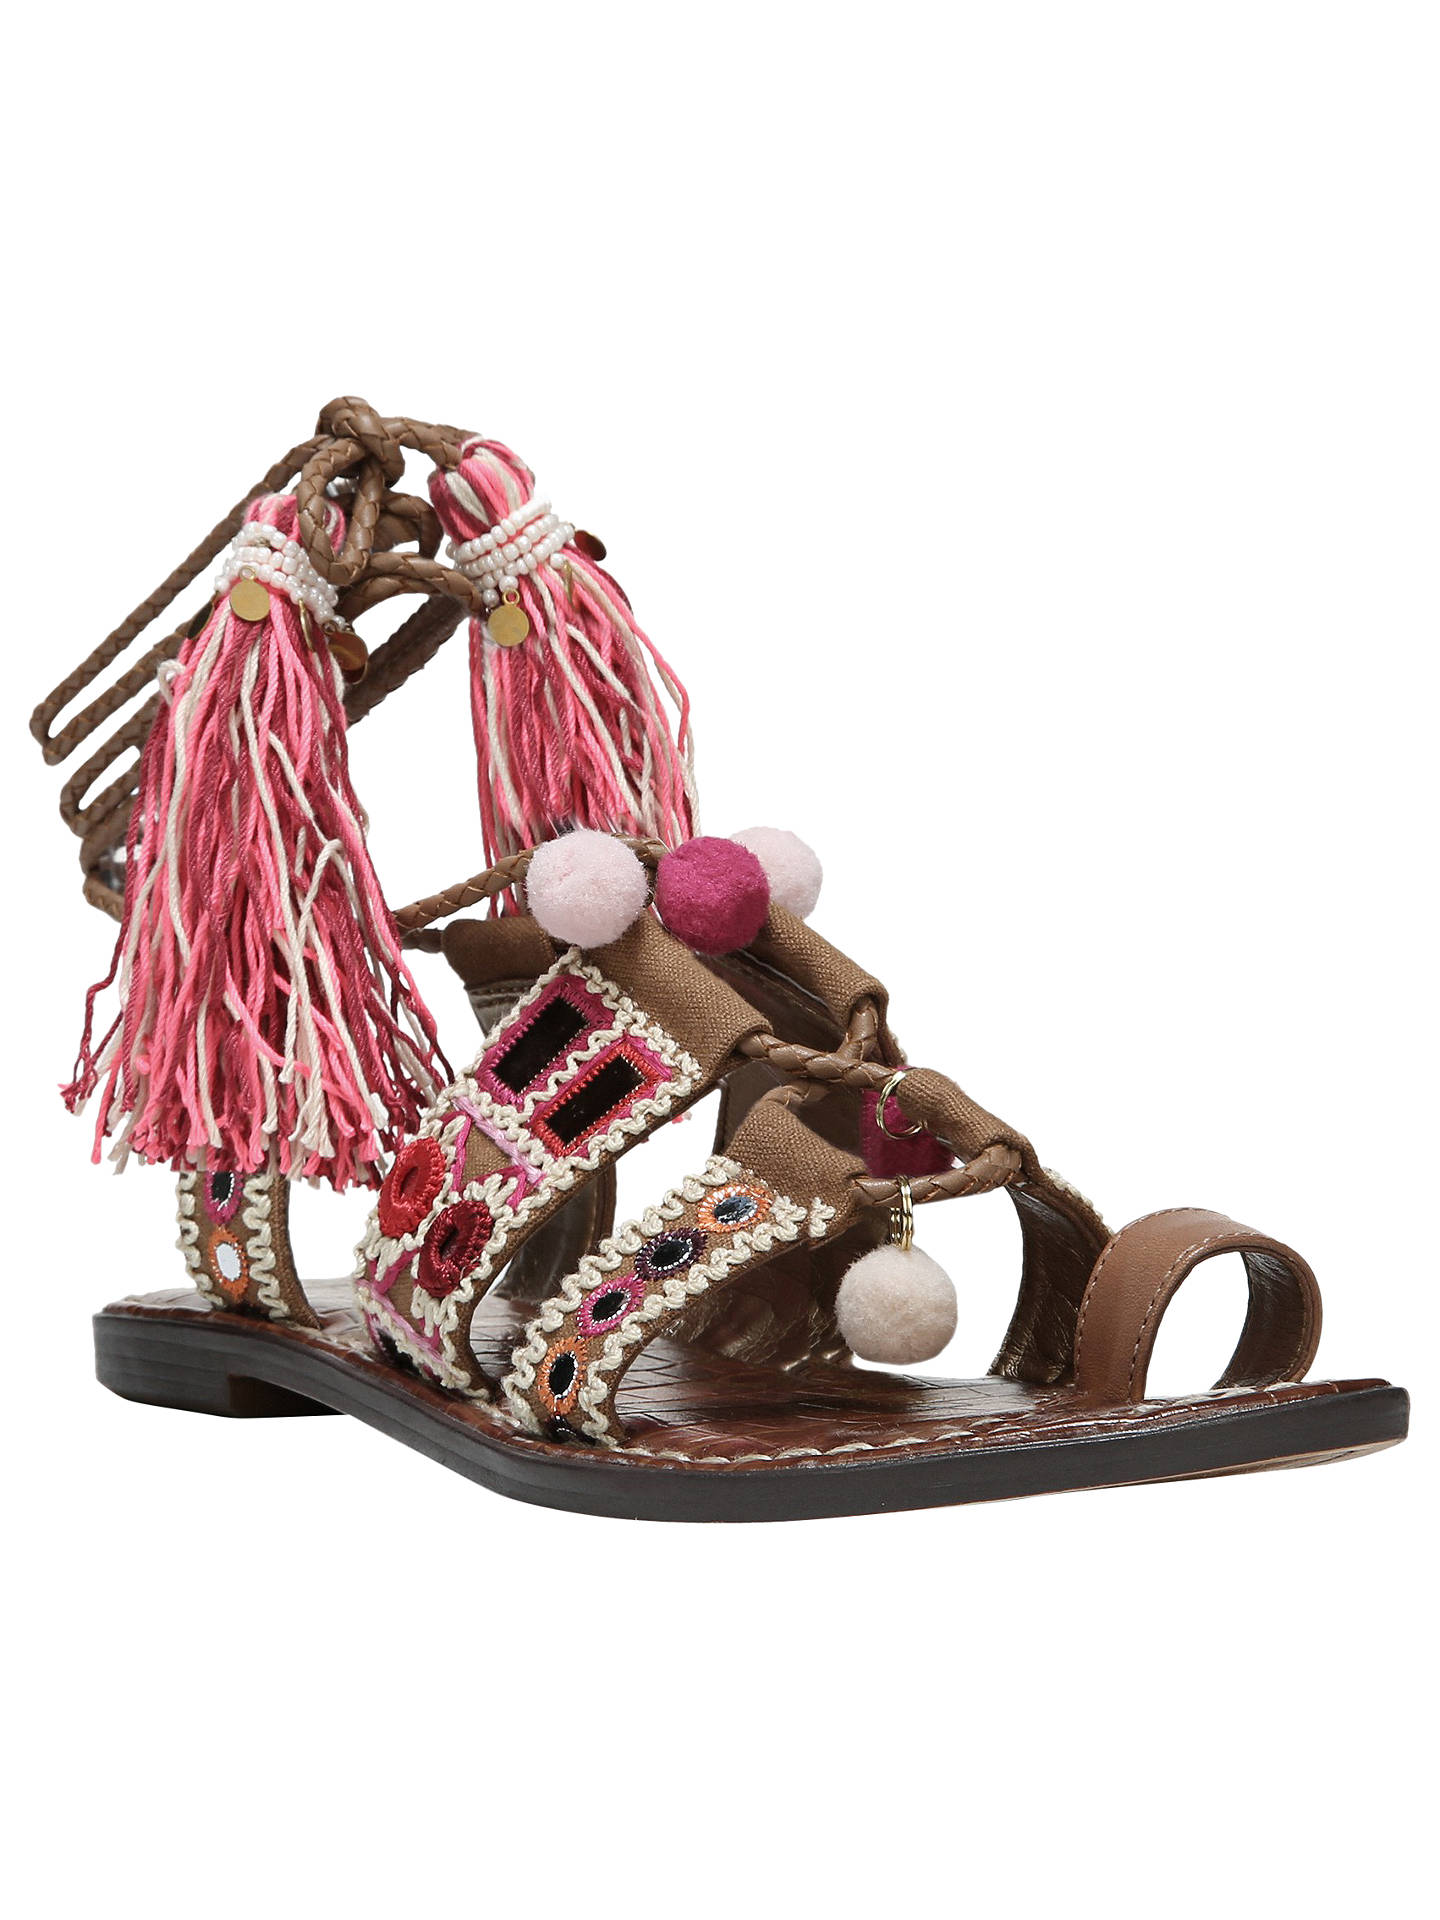 ff6c88932c26 Buy Sam Edelman Gretchen Pom Ankle Strap Sandals